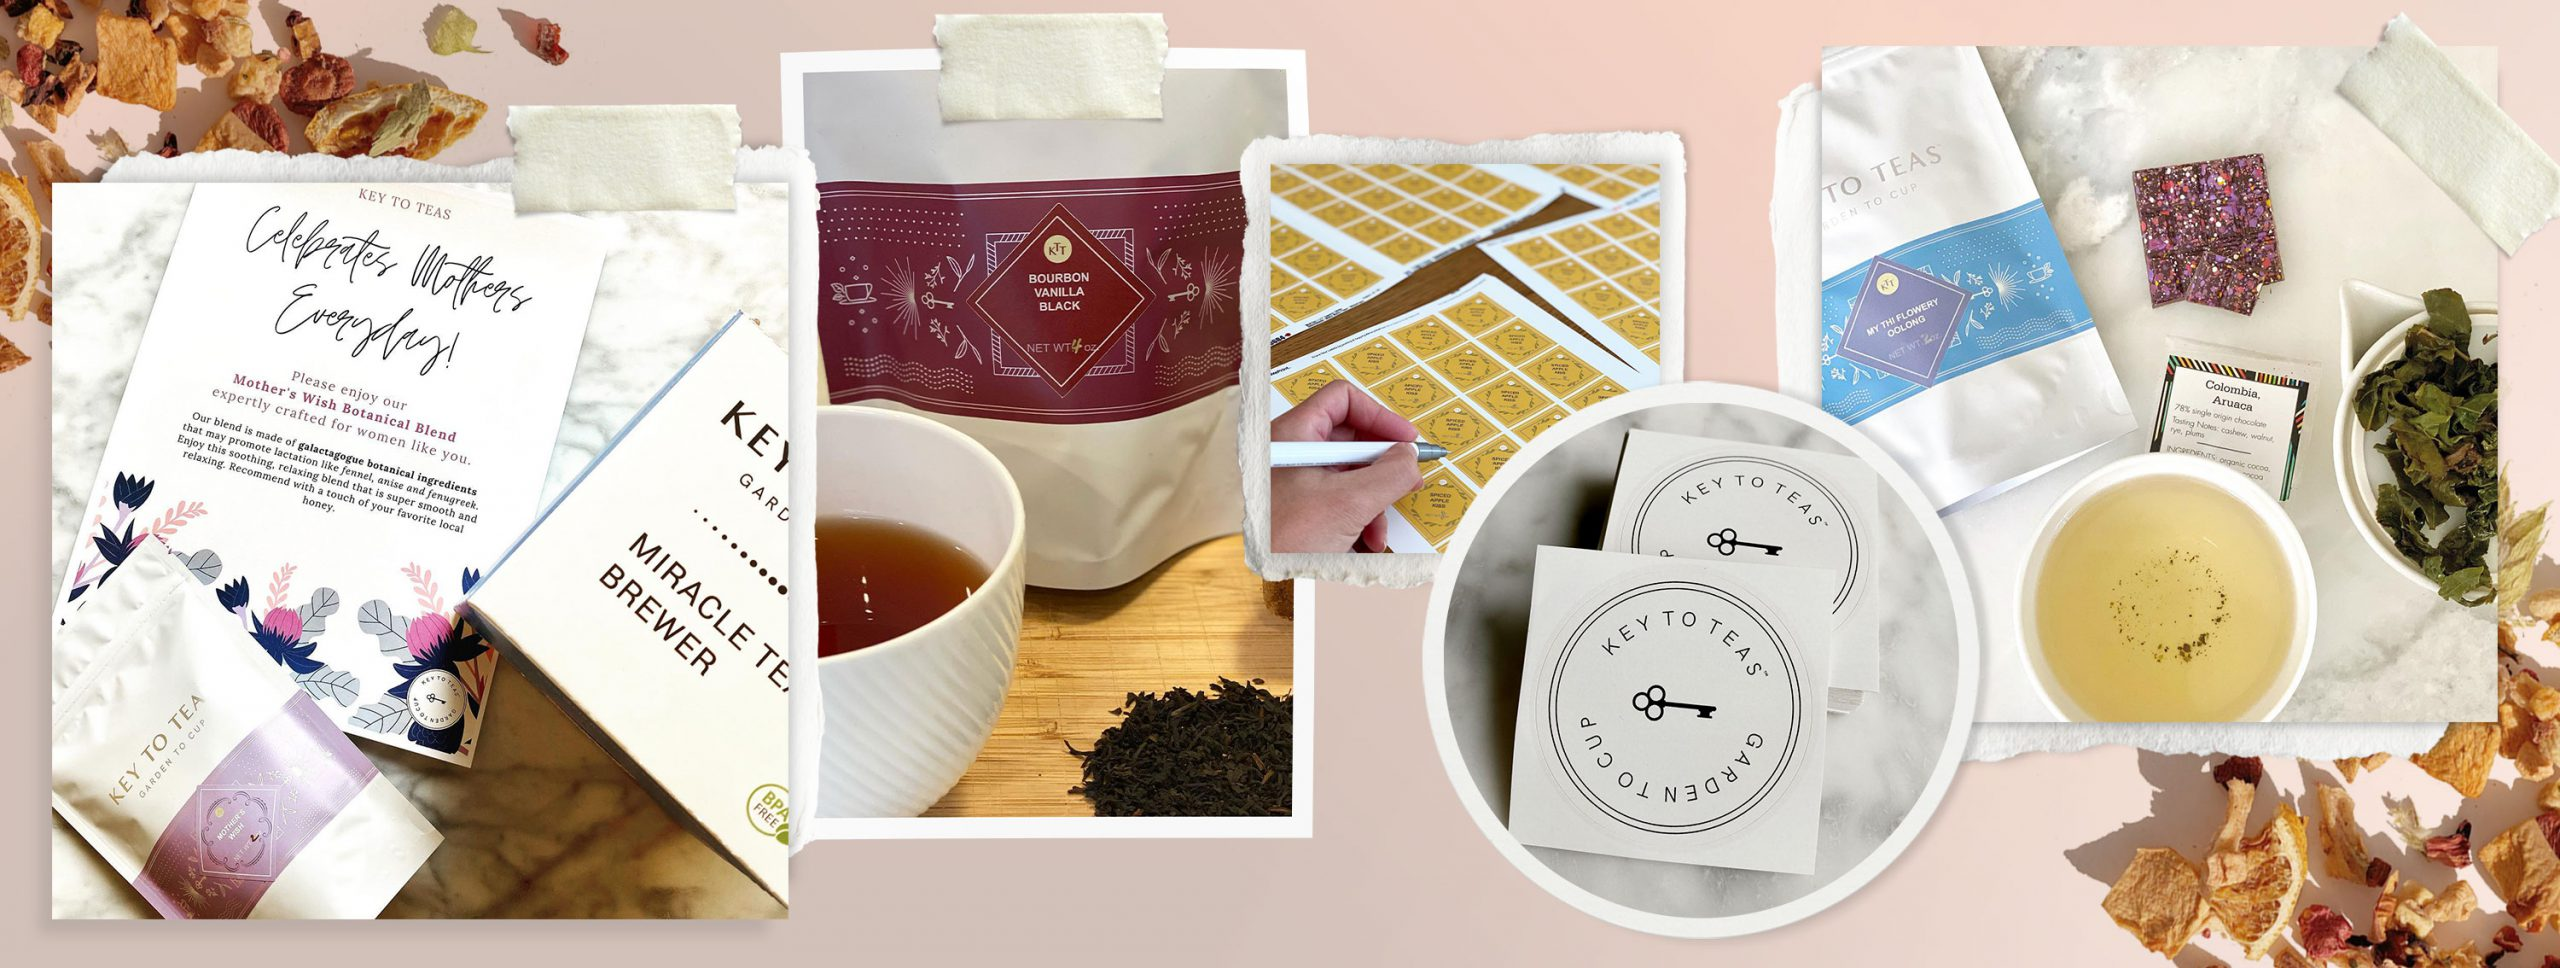 Keys to Teas uses Avery labels for all their product labels